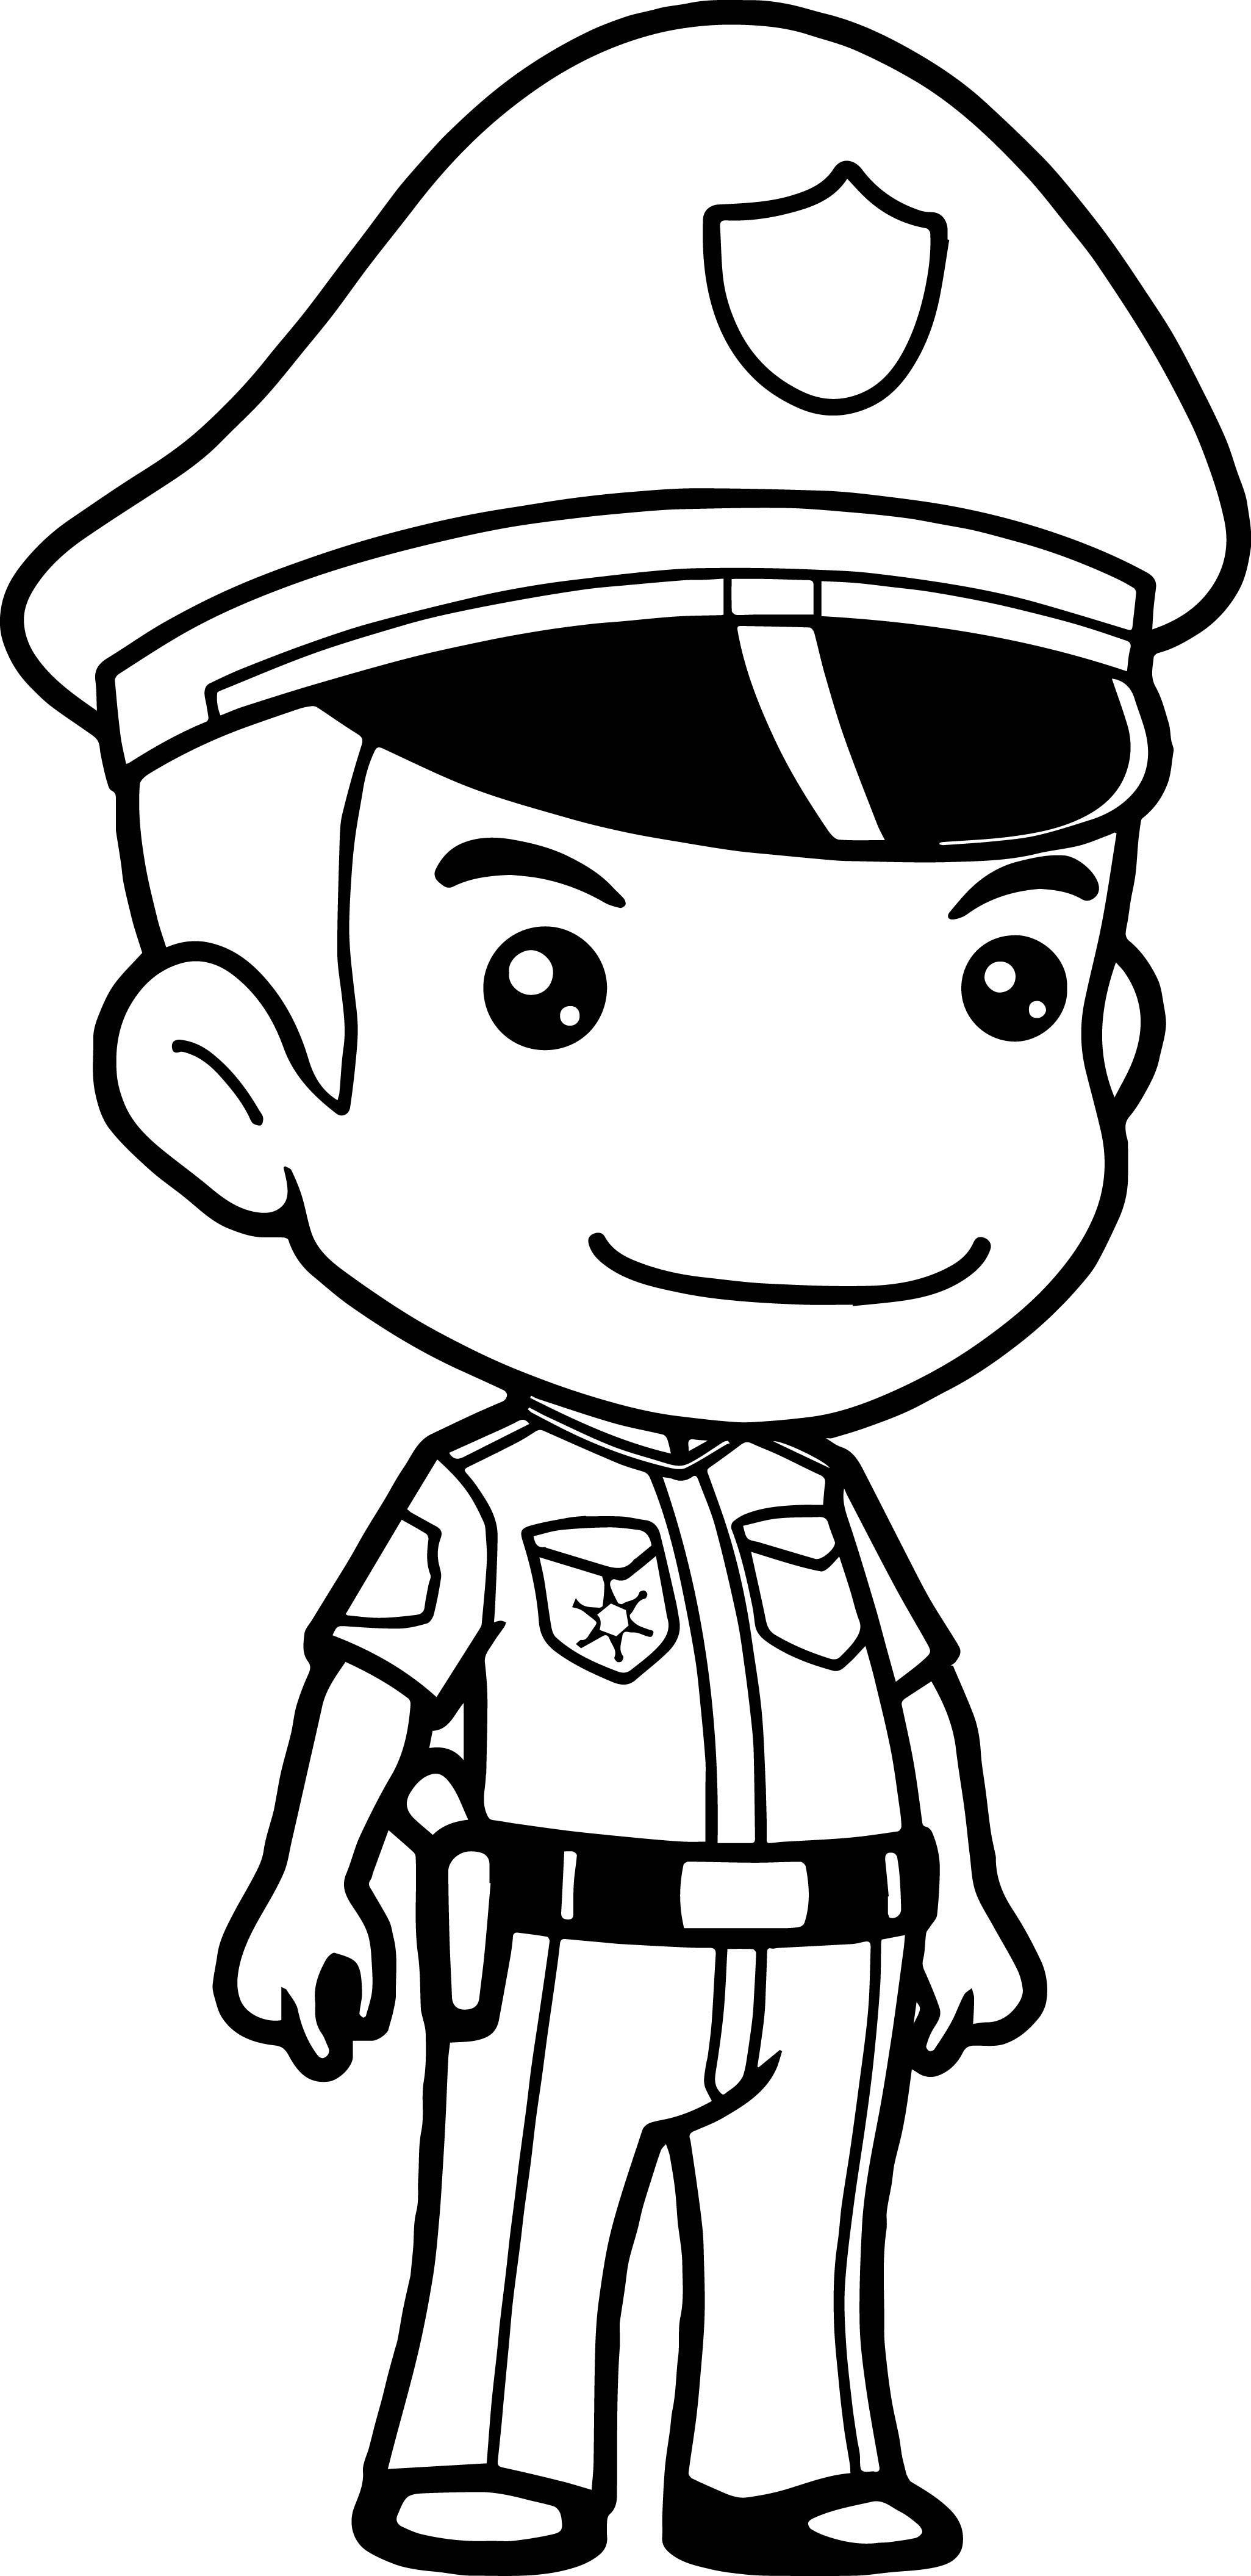 Law Enforcement Coloring Pages At Getcolorings